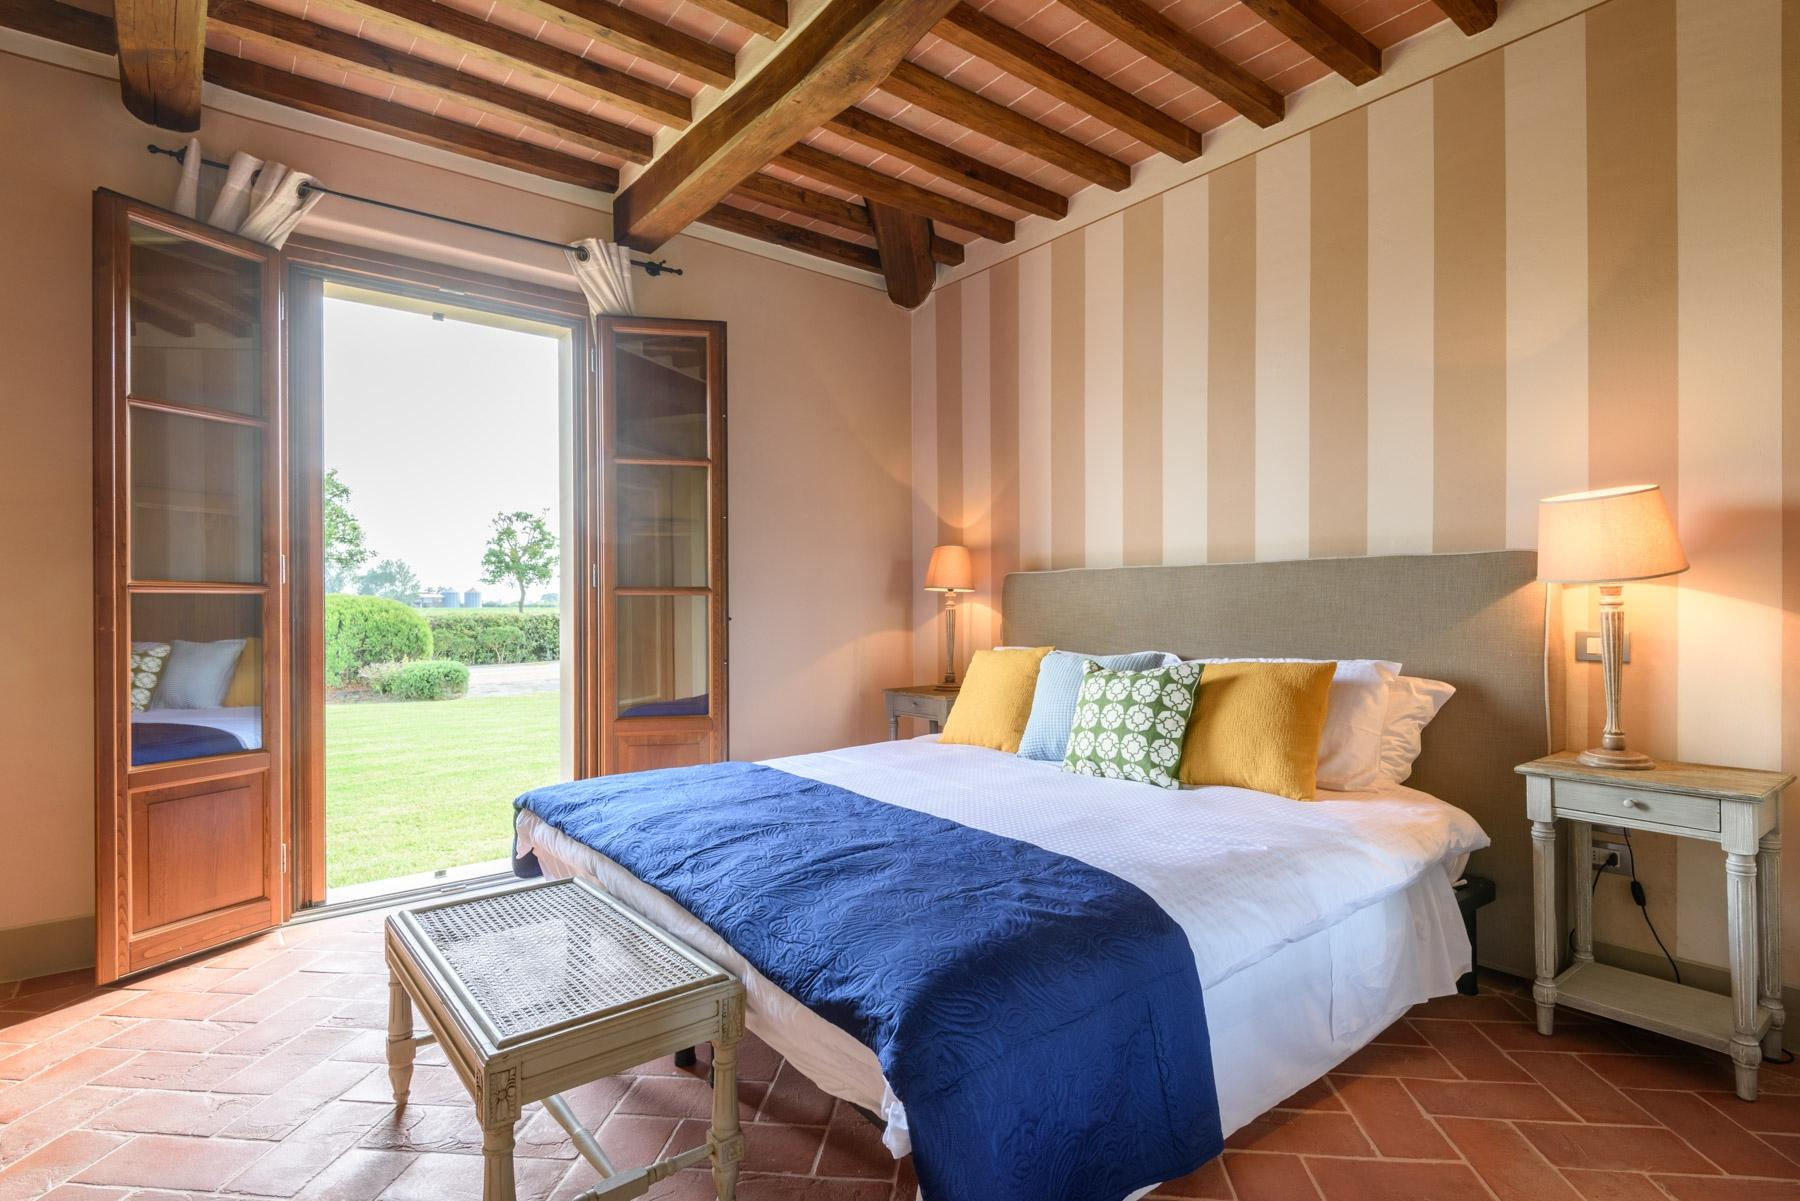 Marvelous hunting lodge in tuscan countryside - 7